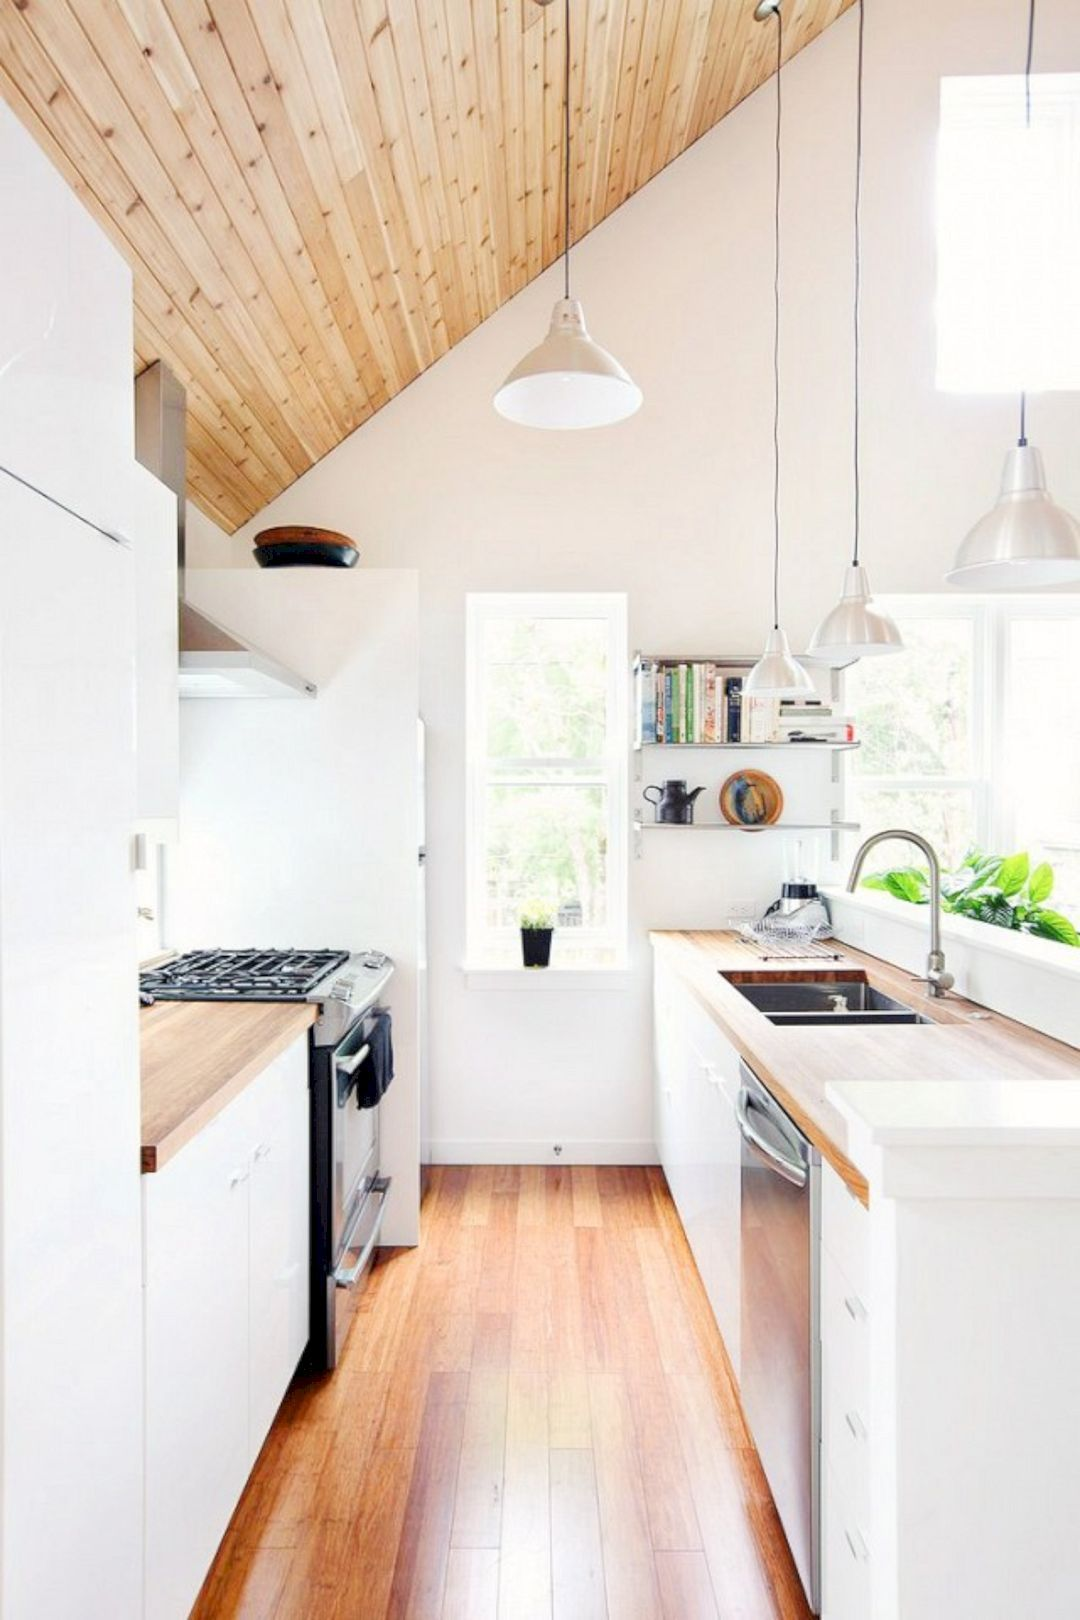 These Kitchen Layouts are Brilliant for Your Tiny House | Pinterest on small kitchen remodeling ideas, small kitchen ideas before and after, bar ideas pinterest, open kitchen shelves pinterest, boss day ideas pinterest, white kitchens pinterest, dark kitchen cabinets pinterest, living room ideas pinterest, small decor pinterest, cabinet ideas pinterest, bunk room ideas pinterest, hallway ideas pinterest, dining area ideas pinterest, new year's eve party ideas pinterest, small white kitchen ideas, small kitchen appliances pinterest, small living rooms pinterest, celebration of life ideas pinterest, kitchen islands pinterest, small home decorating pinterest,